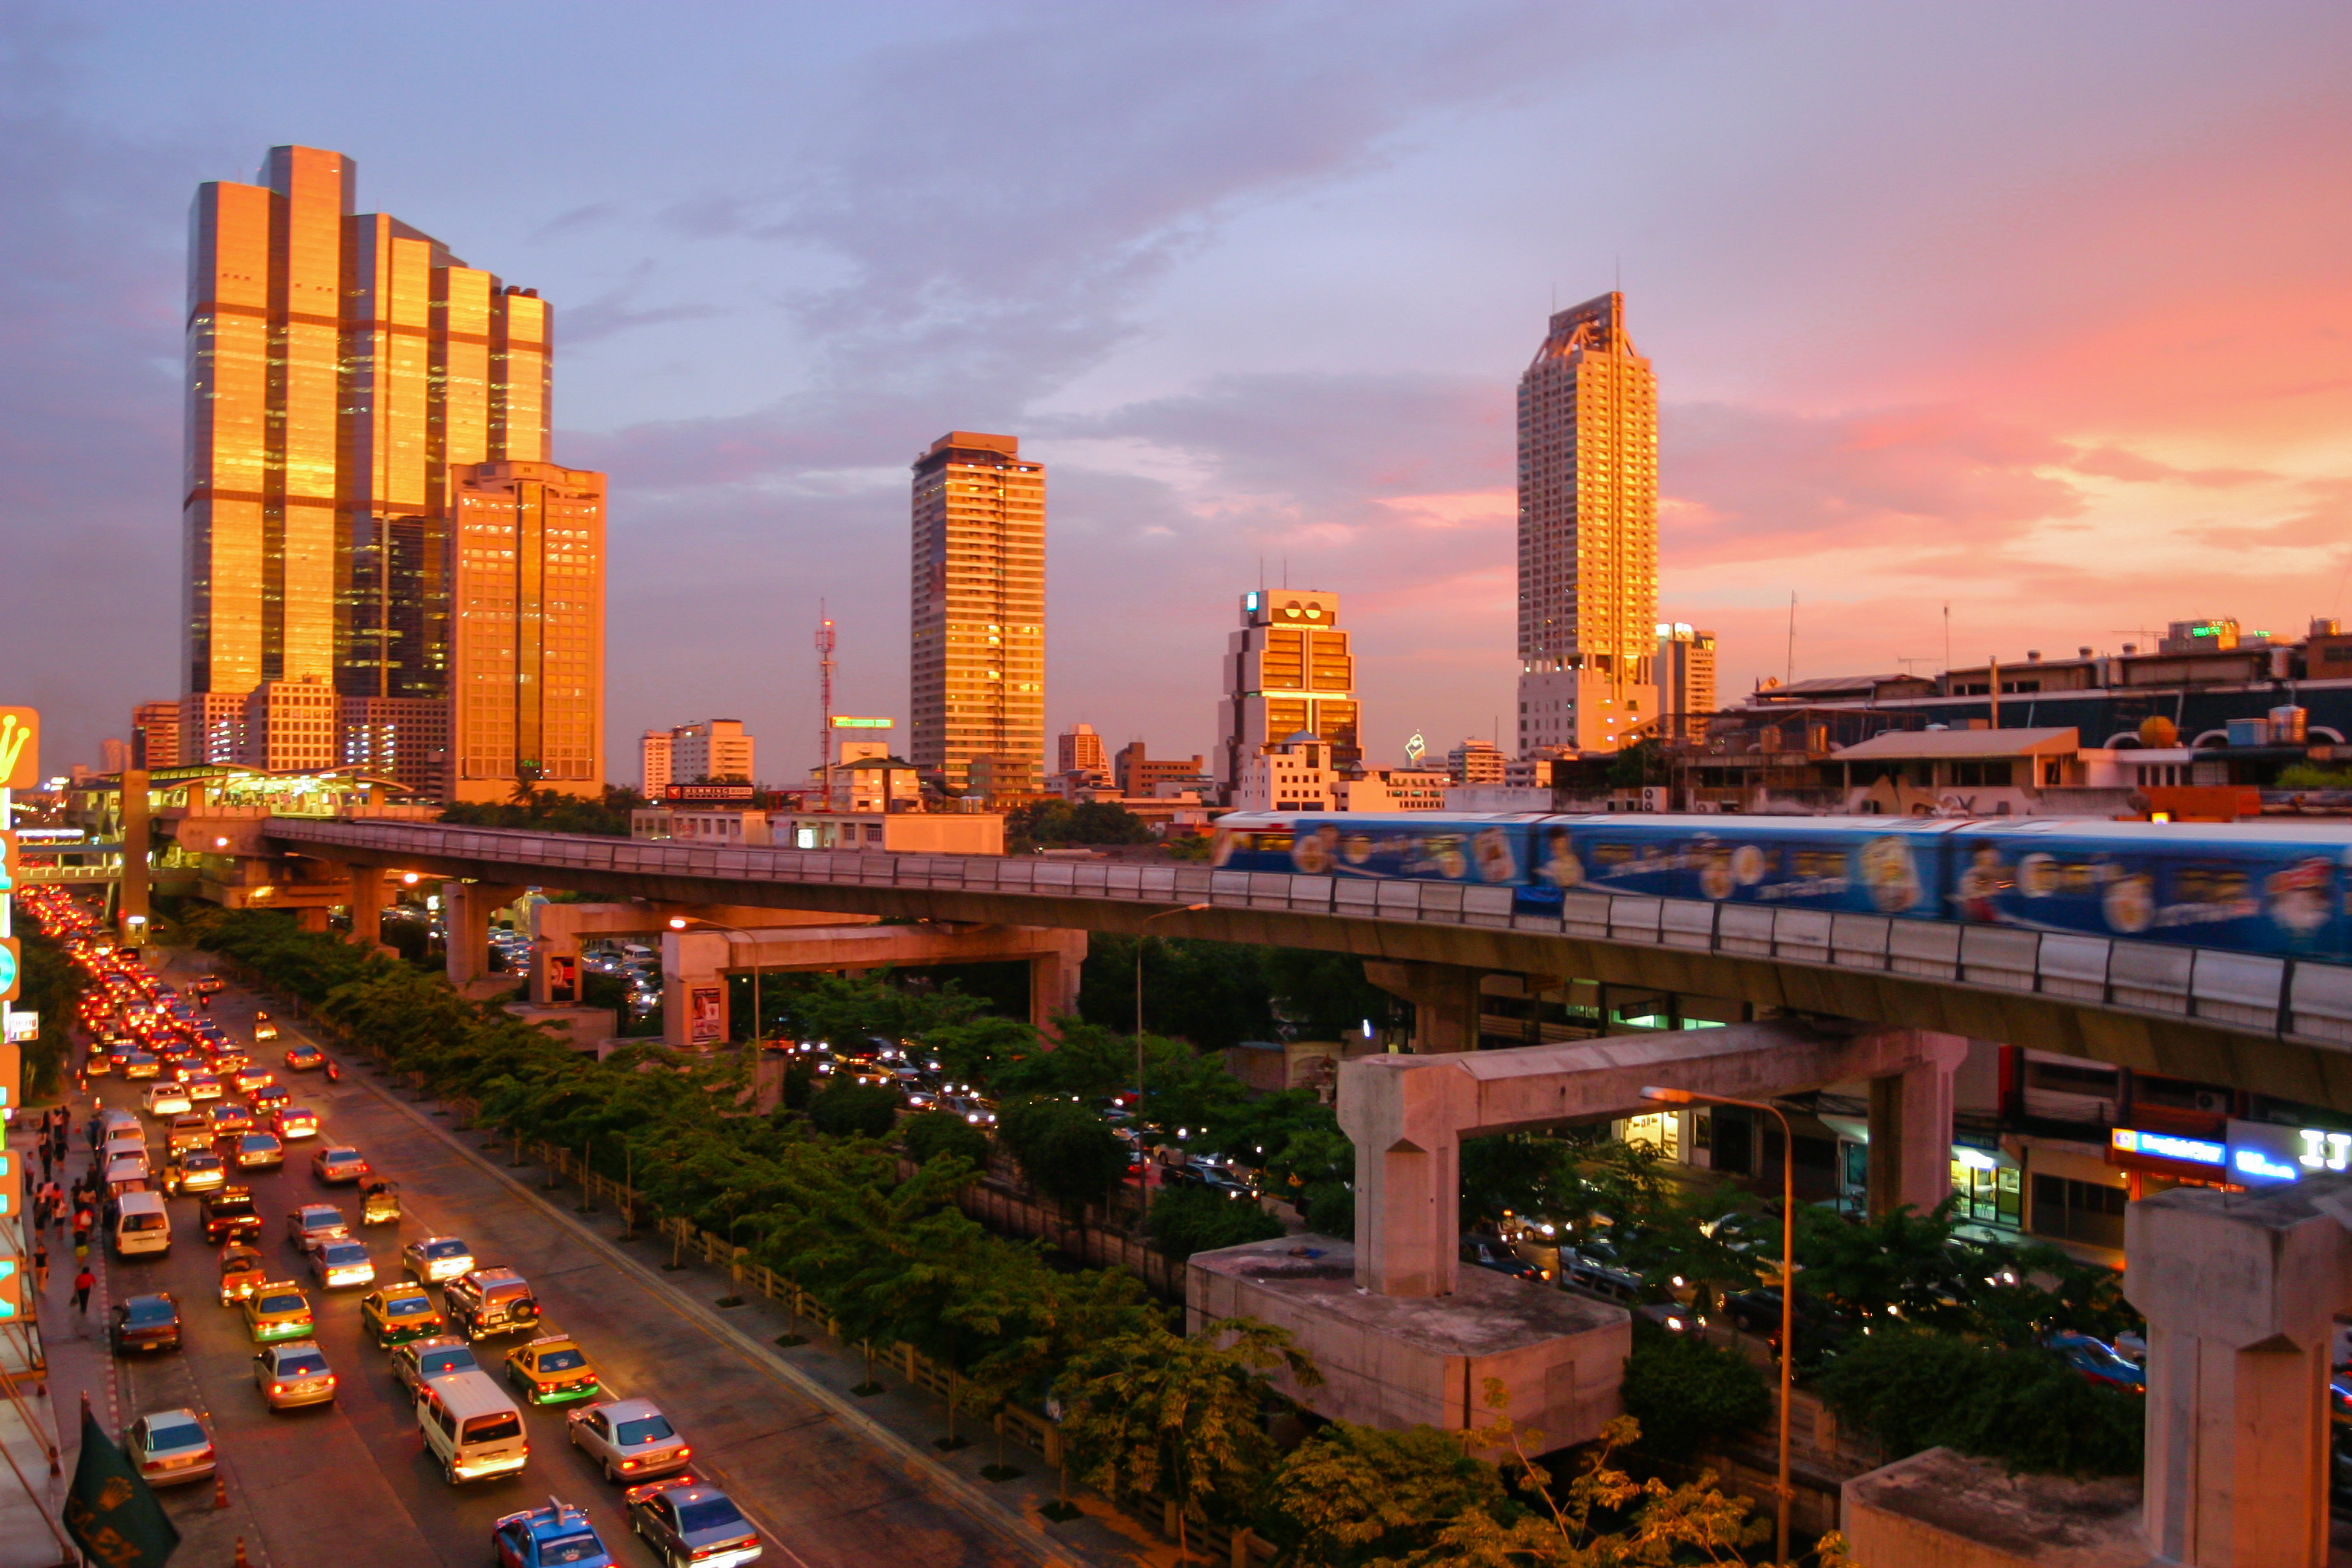 Bangkok can be seen as an example of spontaneous order